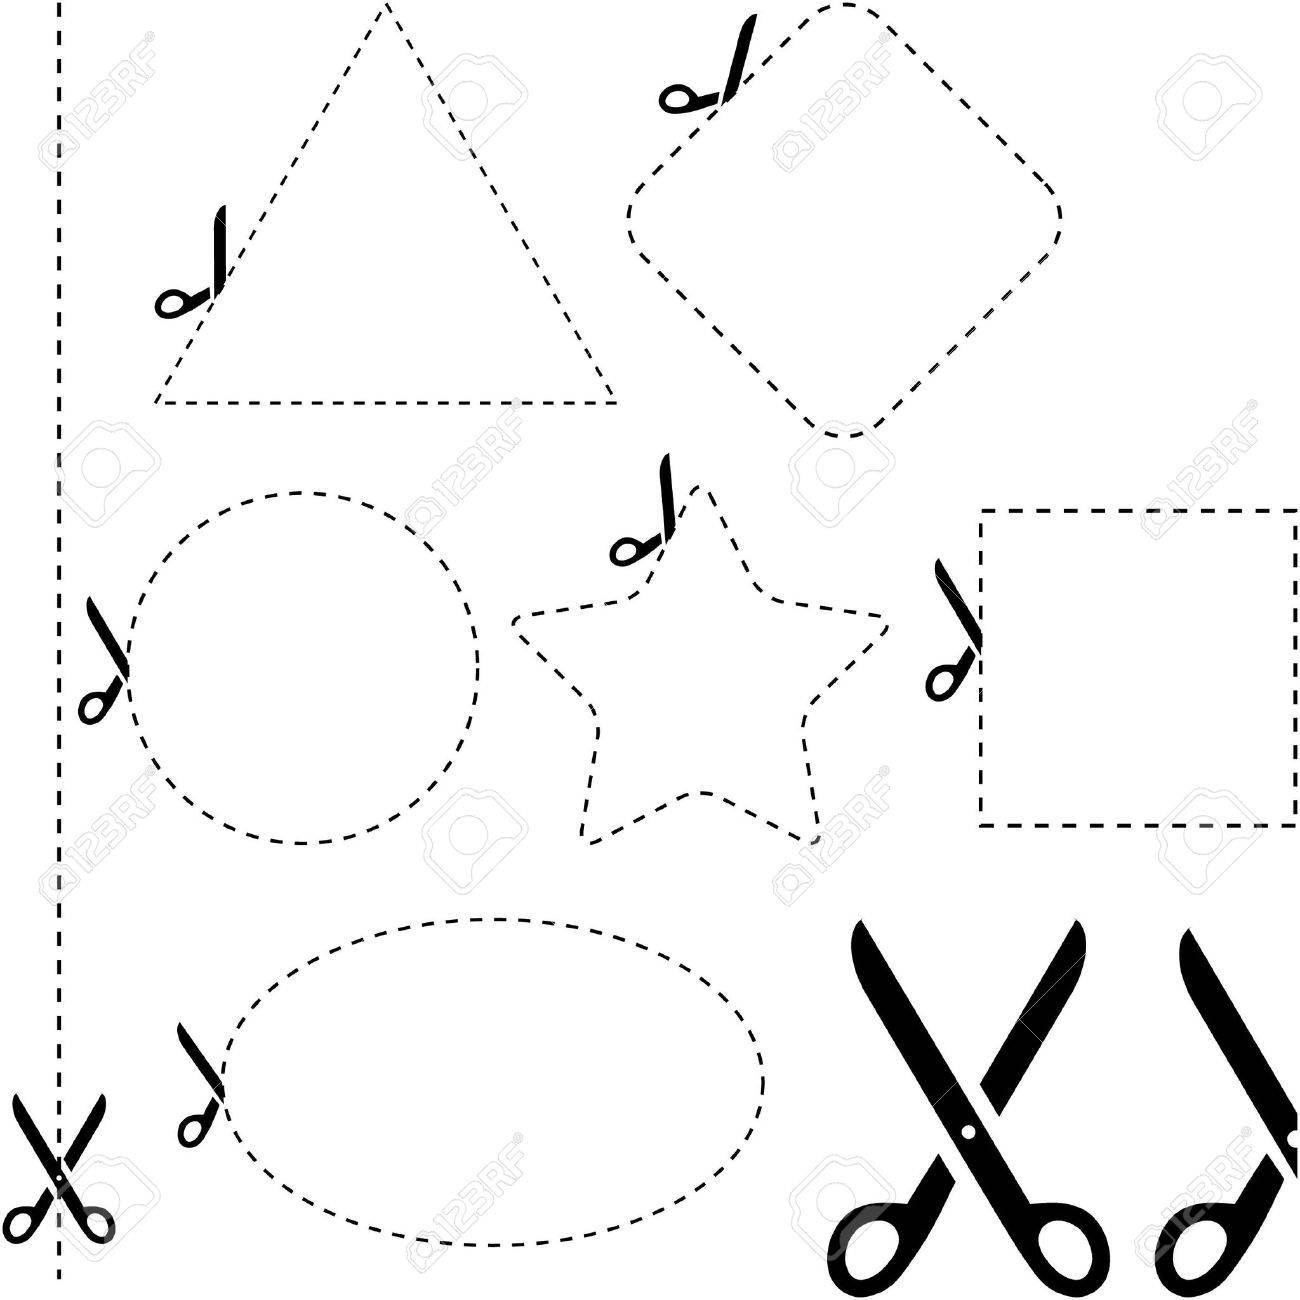 Vector scissors with cut lines templates to choose from Stock Vector - 6549236